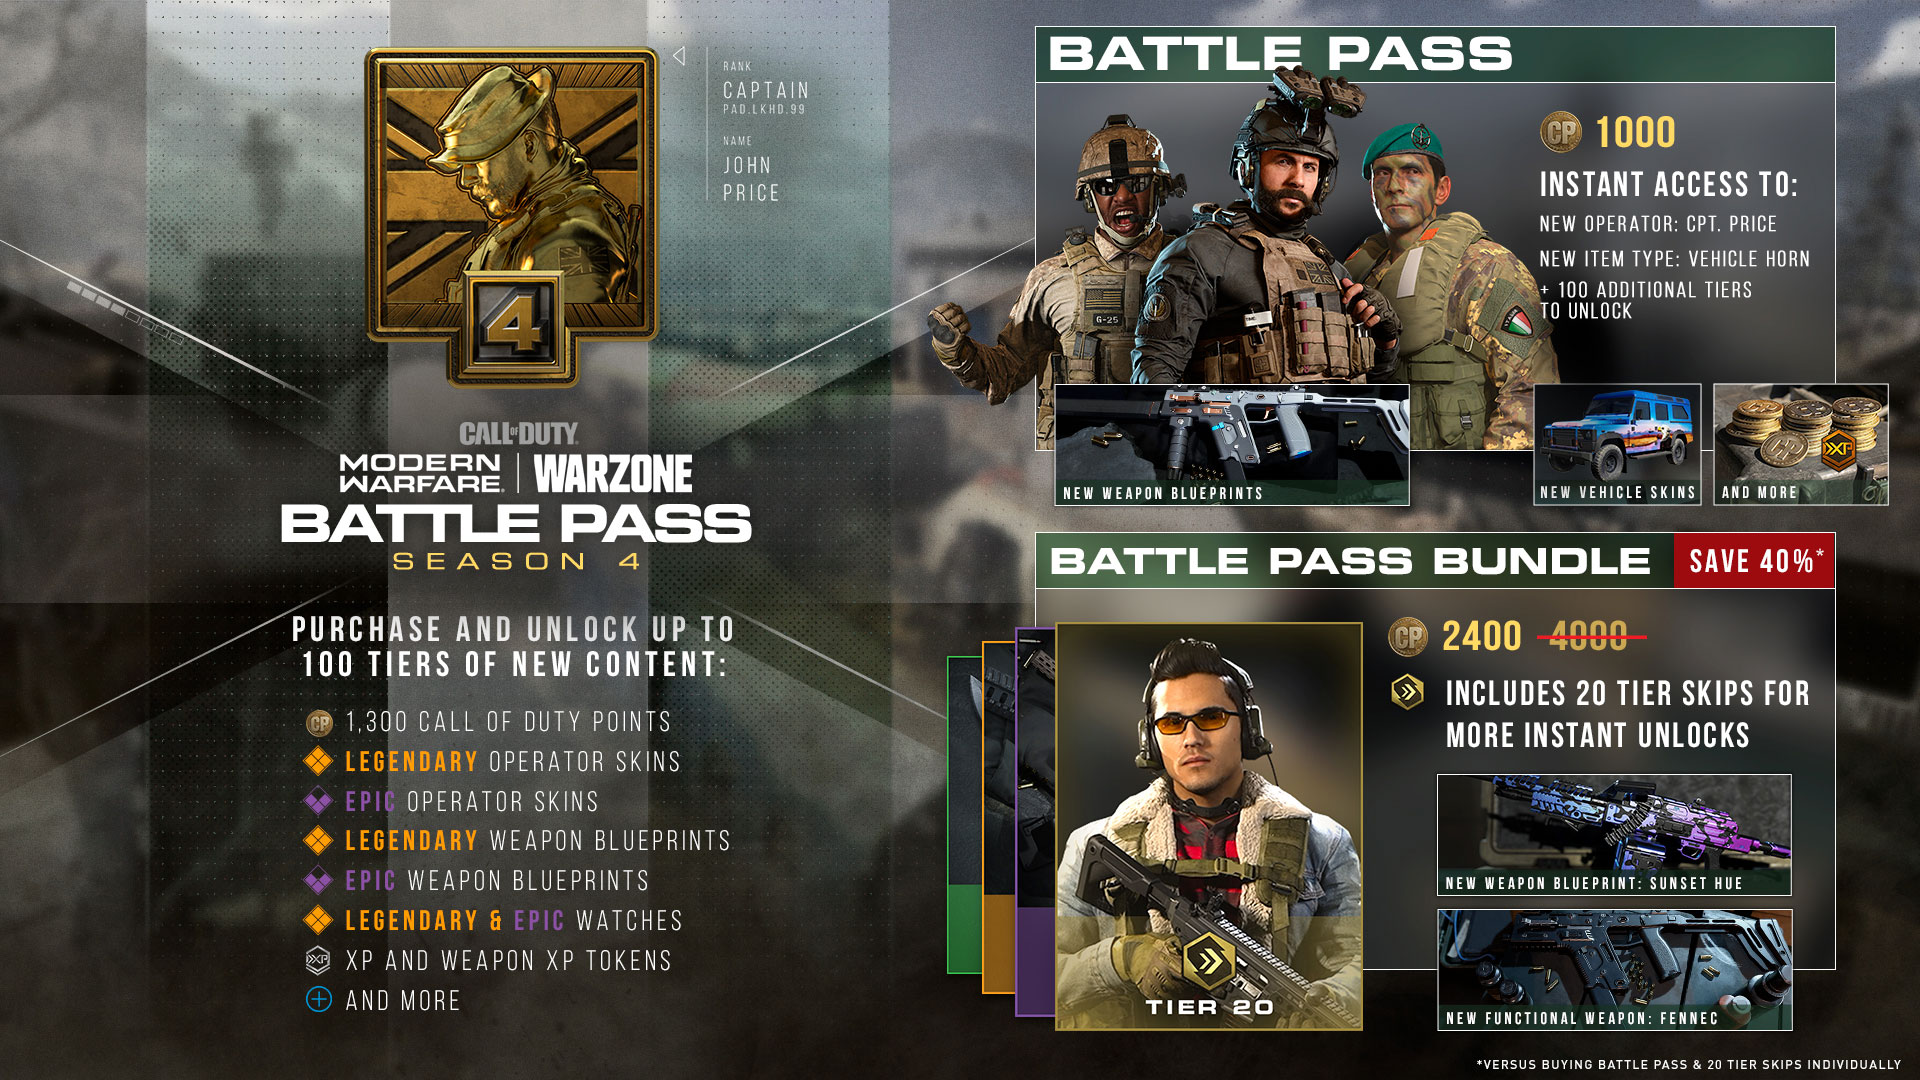 Unlock Up to 100 Tiers of Gear with the Battle Pass